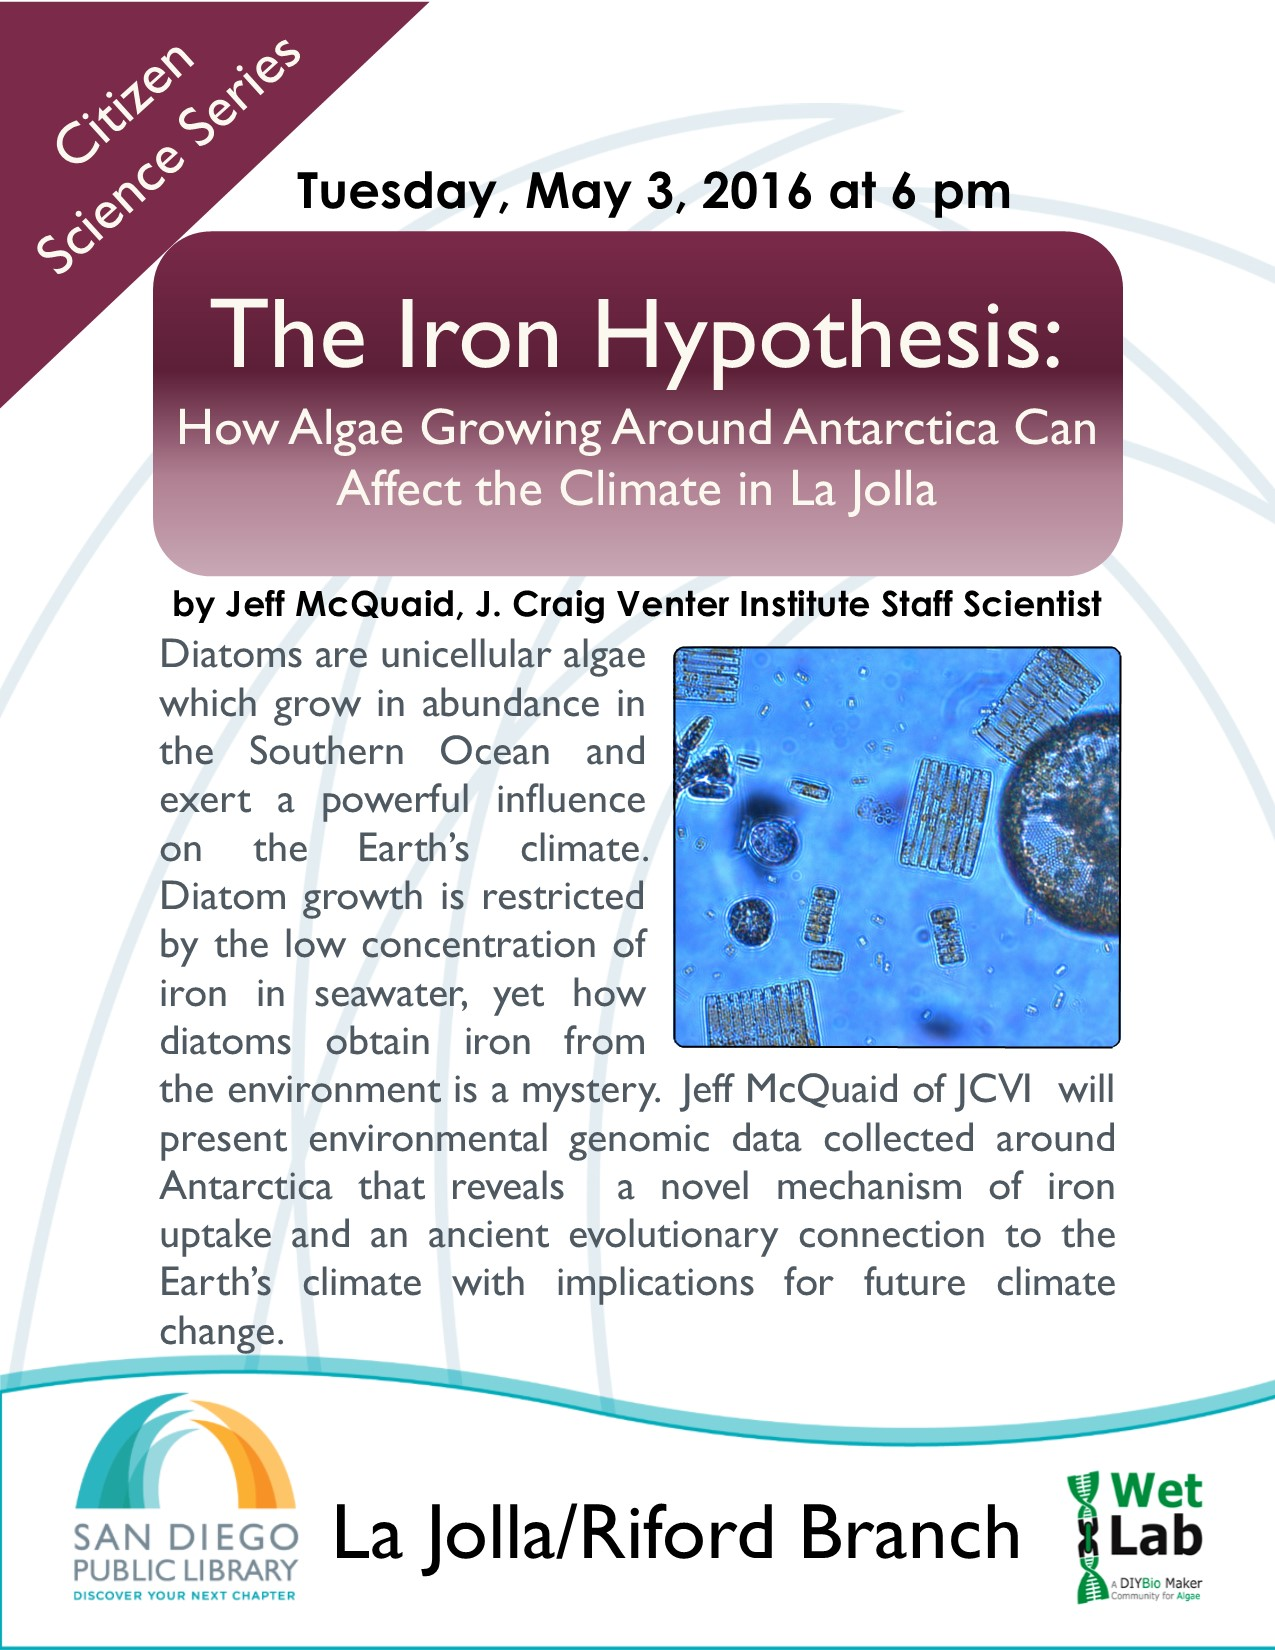 The Iron Hypothesis - How Algae Growing Around Antarctica Can Affect the Climate in La Jolla